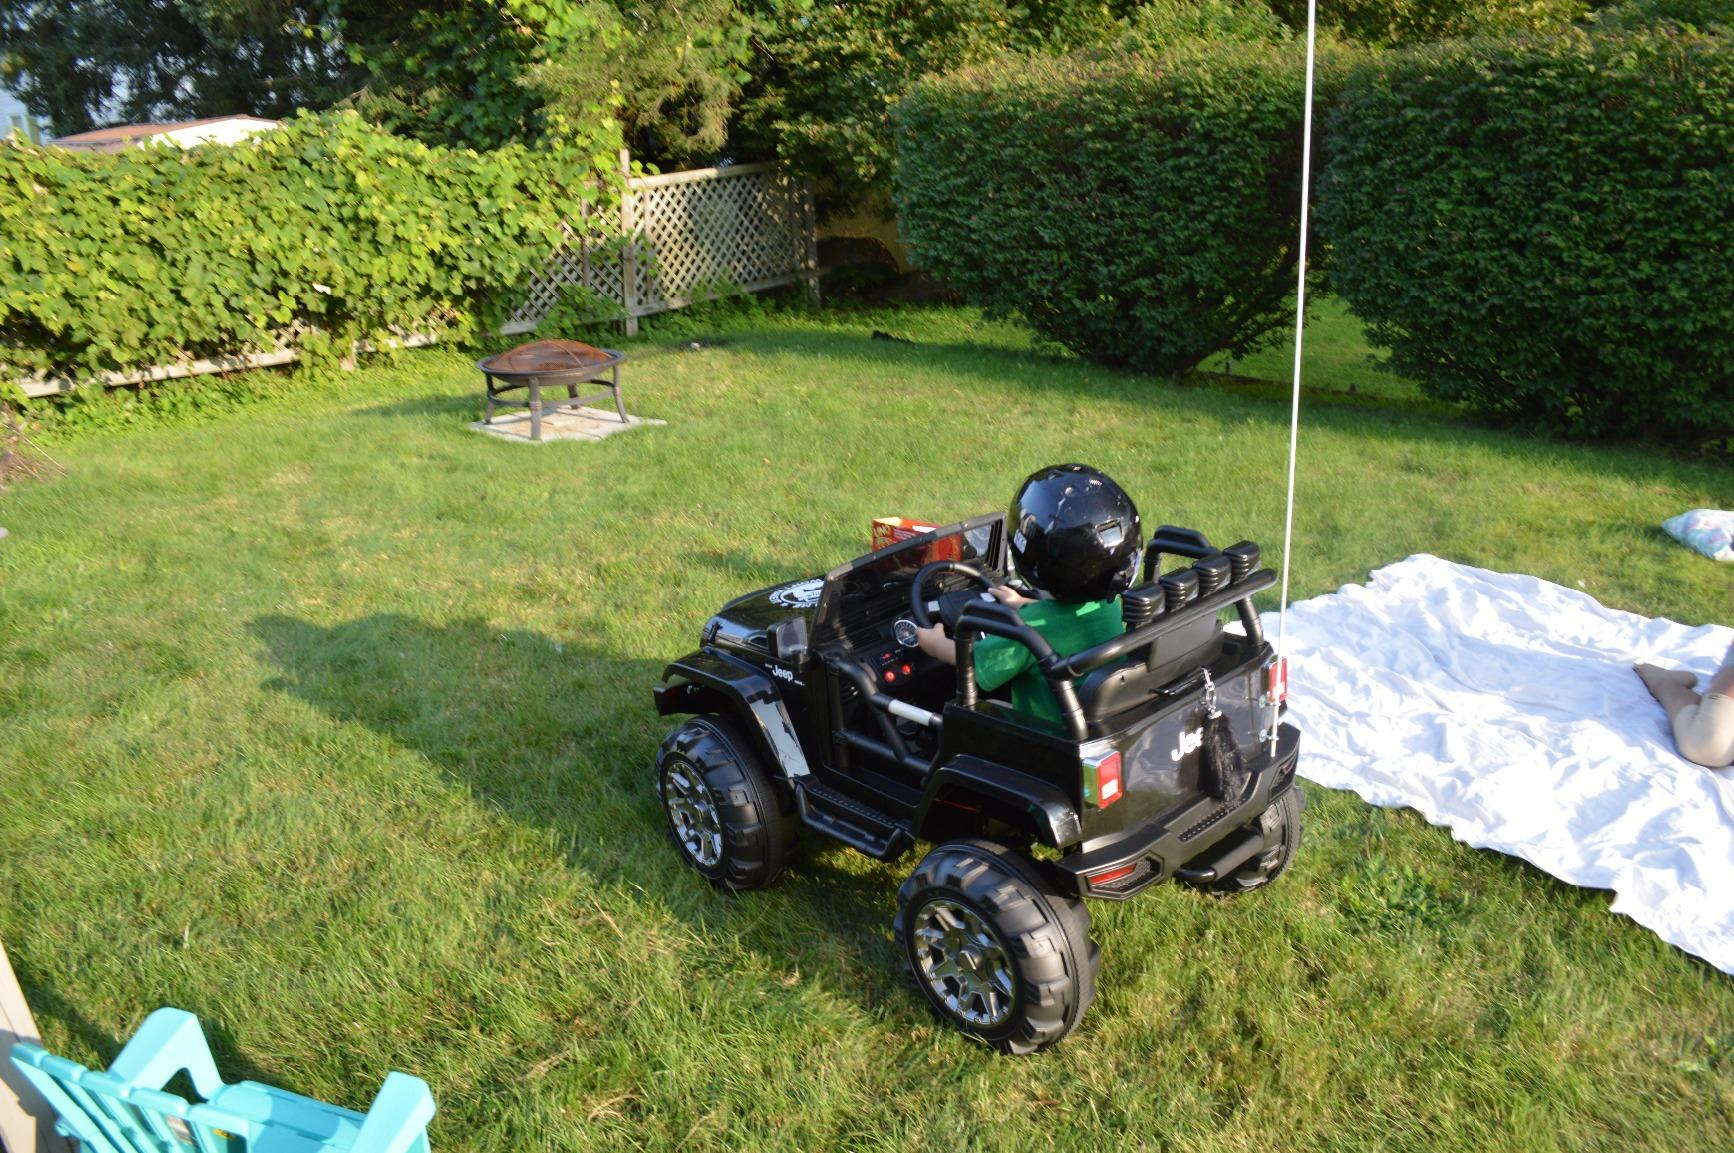 12V Battery Operated Kids Ride On Truck with Remote Control, Black photo review